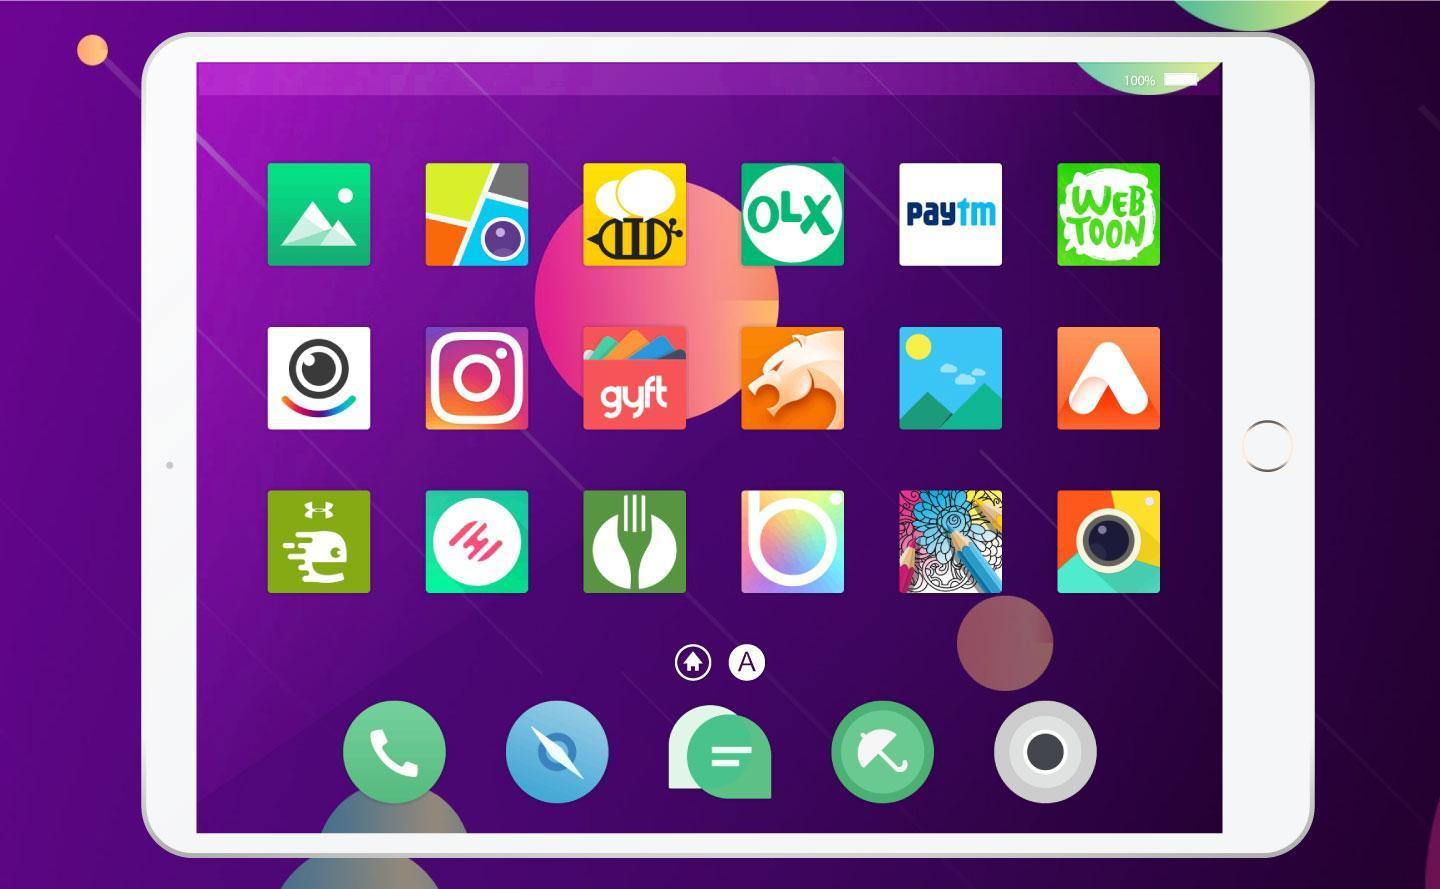 Flyme 6 - Icon Pack for Android - APK Download